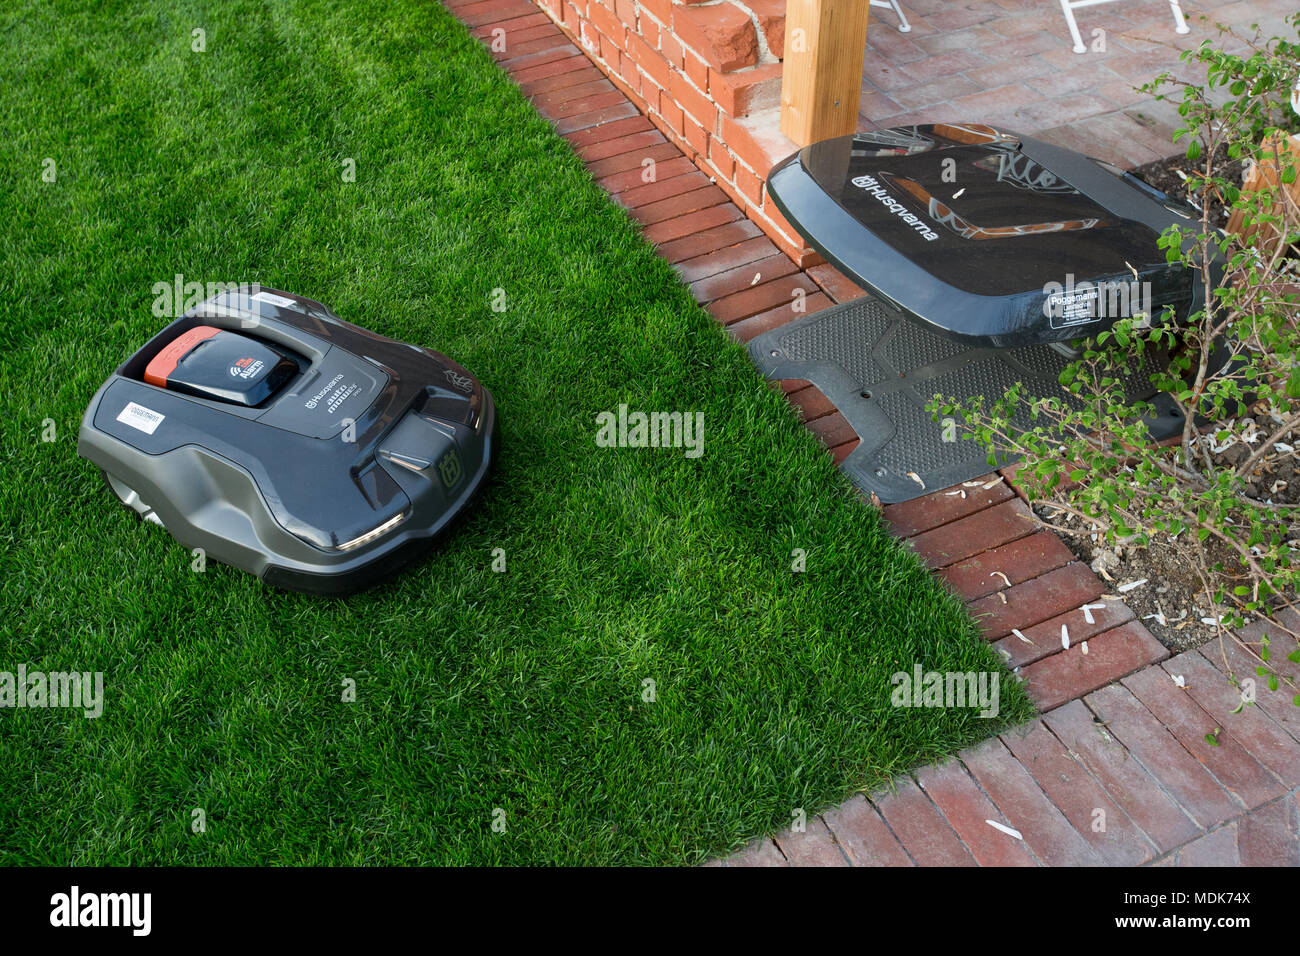 17 April 2018, Germany, Bad Iburg: An lawn mowing Husqvarna Automower robot cats the lawn on the premises of the the regional horticultural show. Photo: Friso Gentsch/dpa - Stock Image